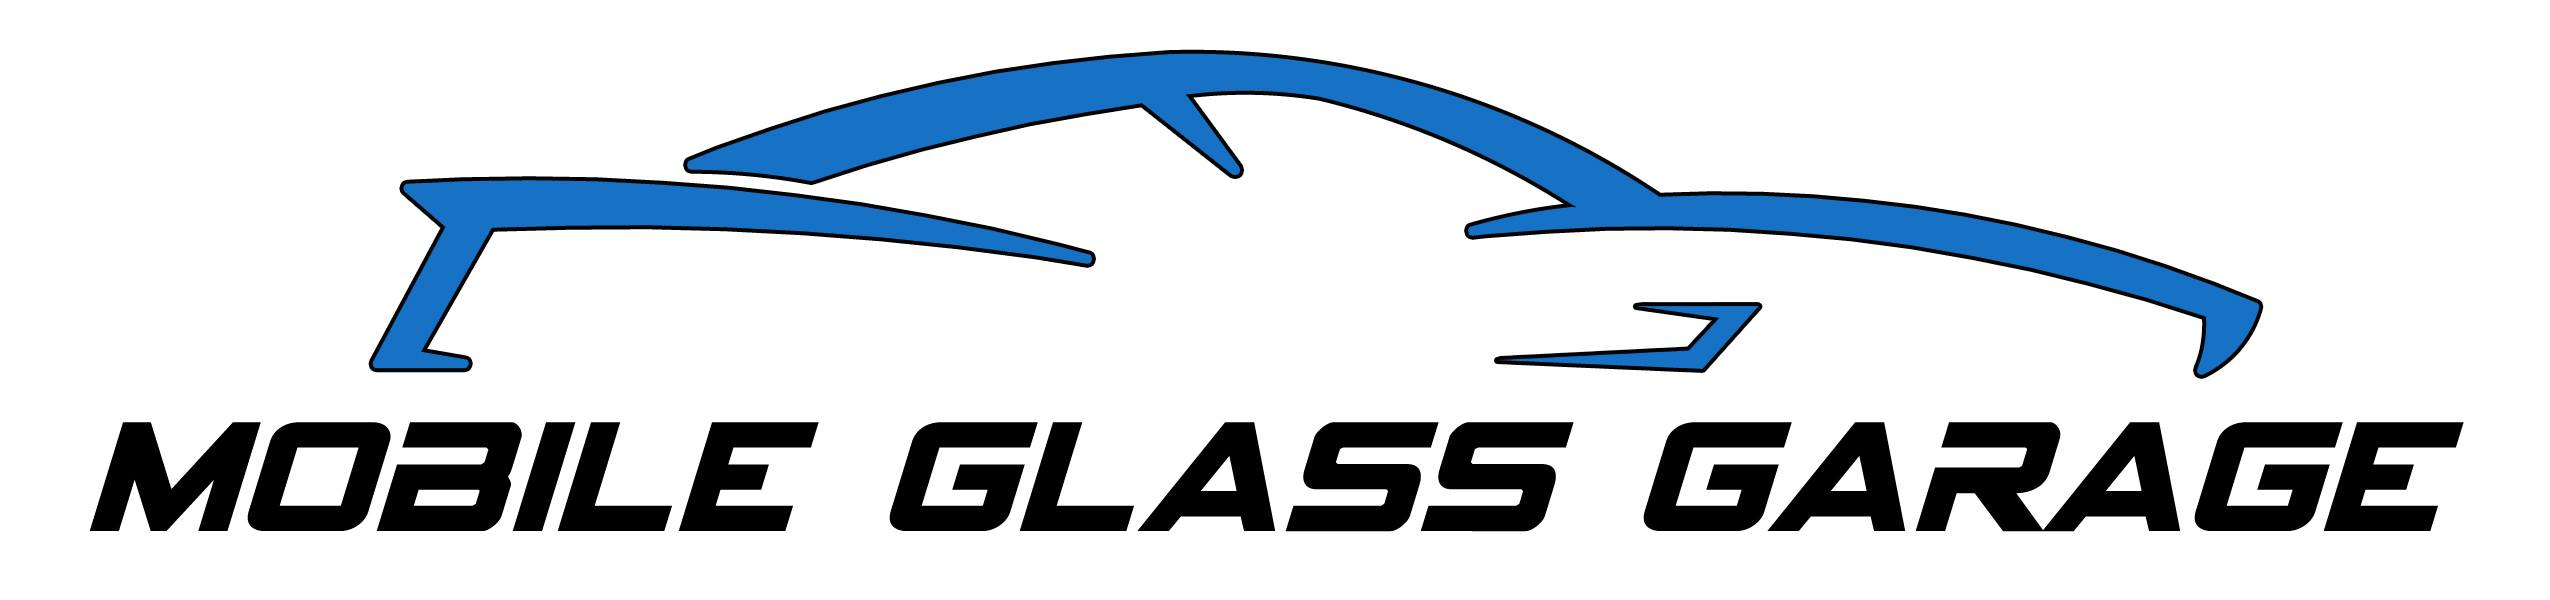 Mobile Glass Garage Logo